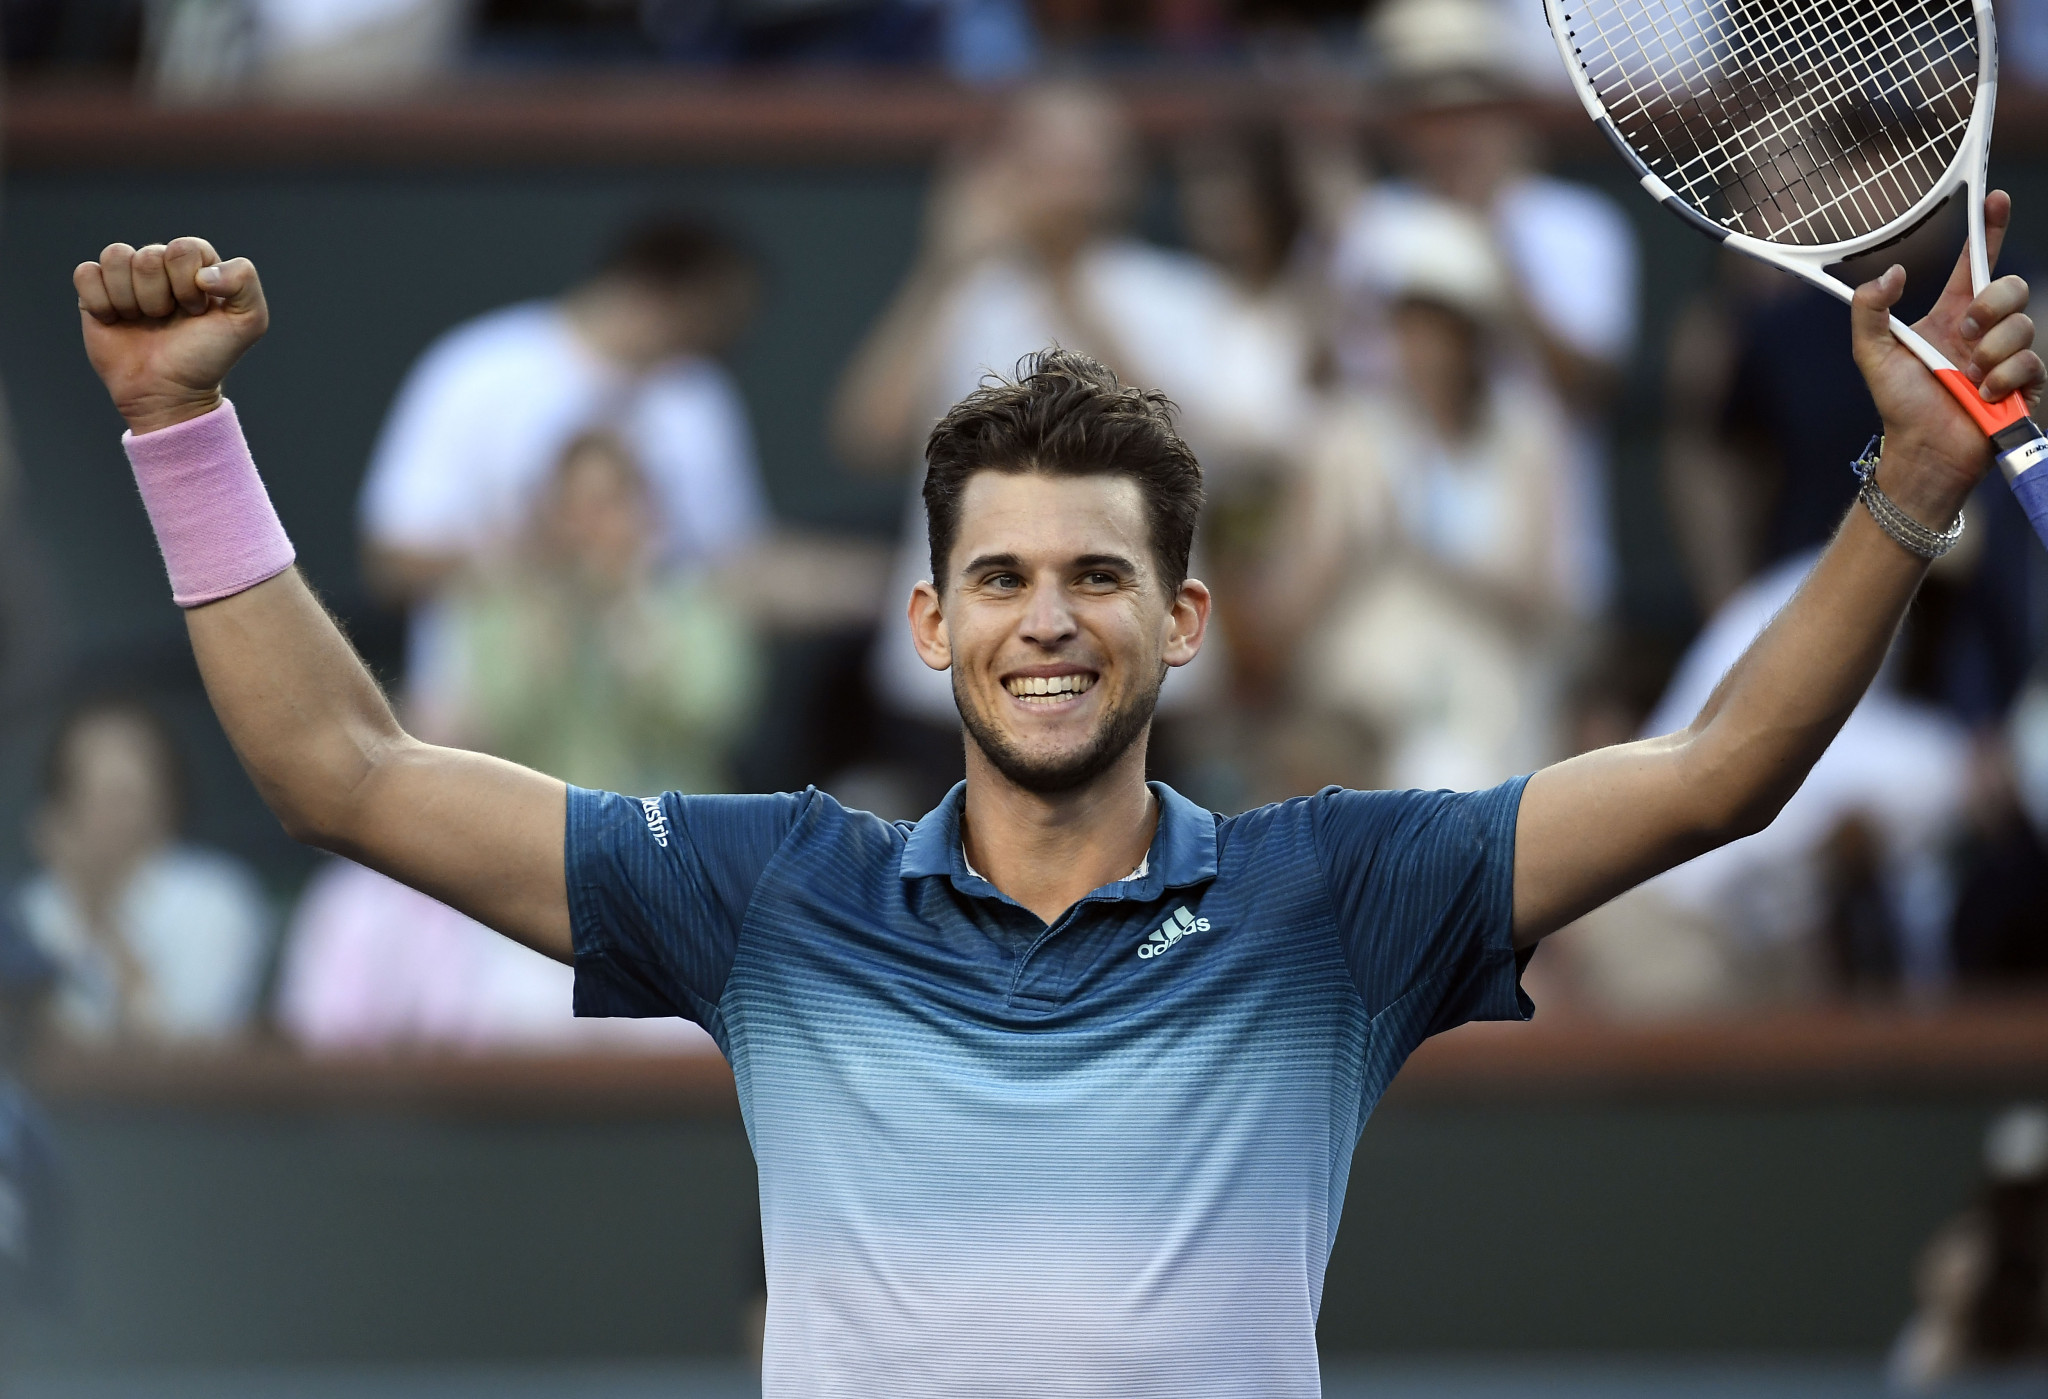 Dominic Thiem came from a set down to beat Roger Federer in the men's final ©Getty Images